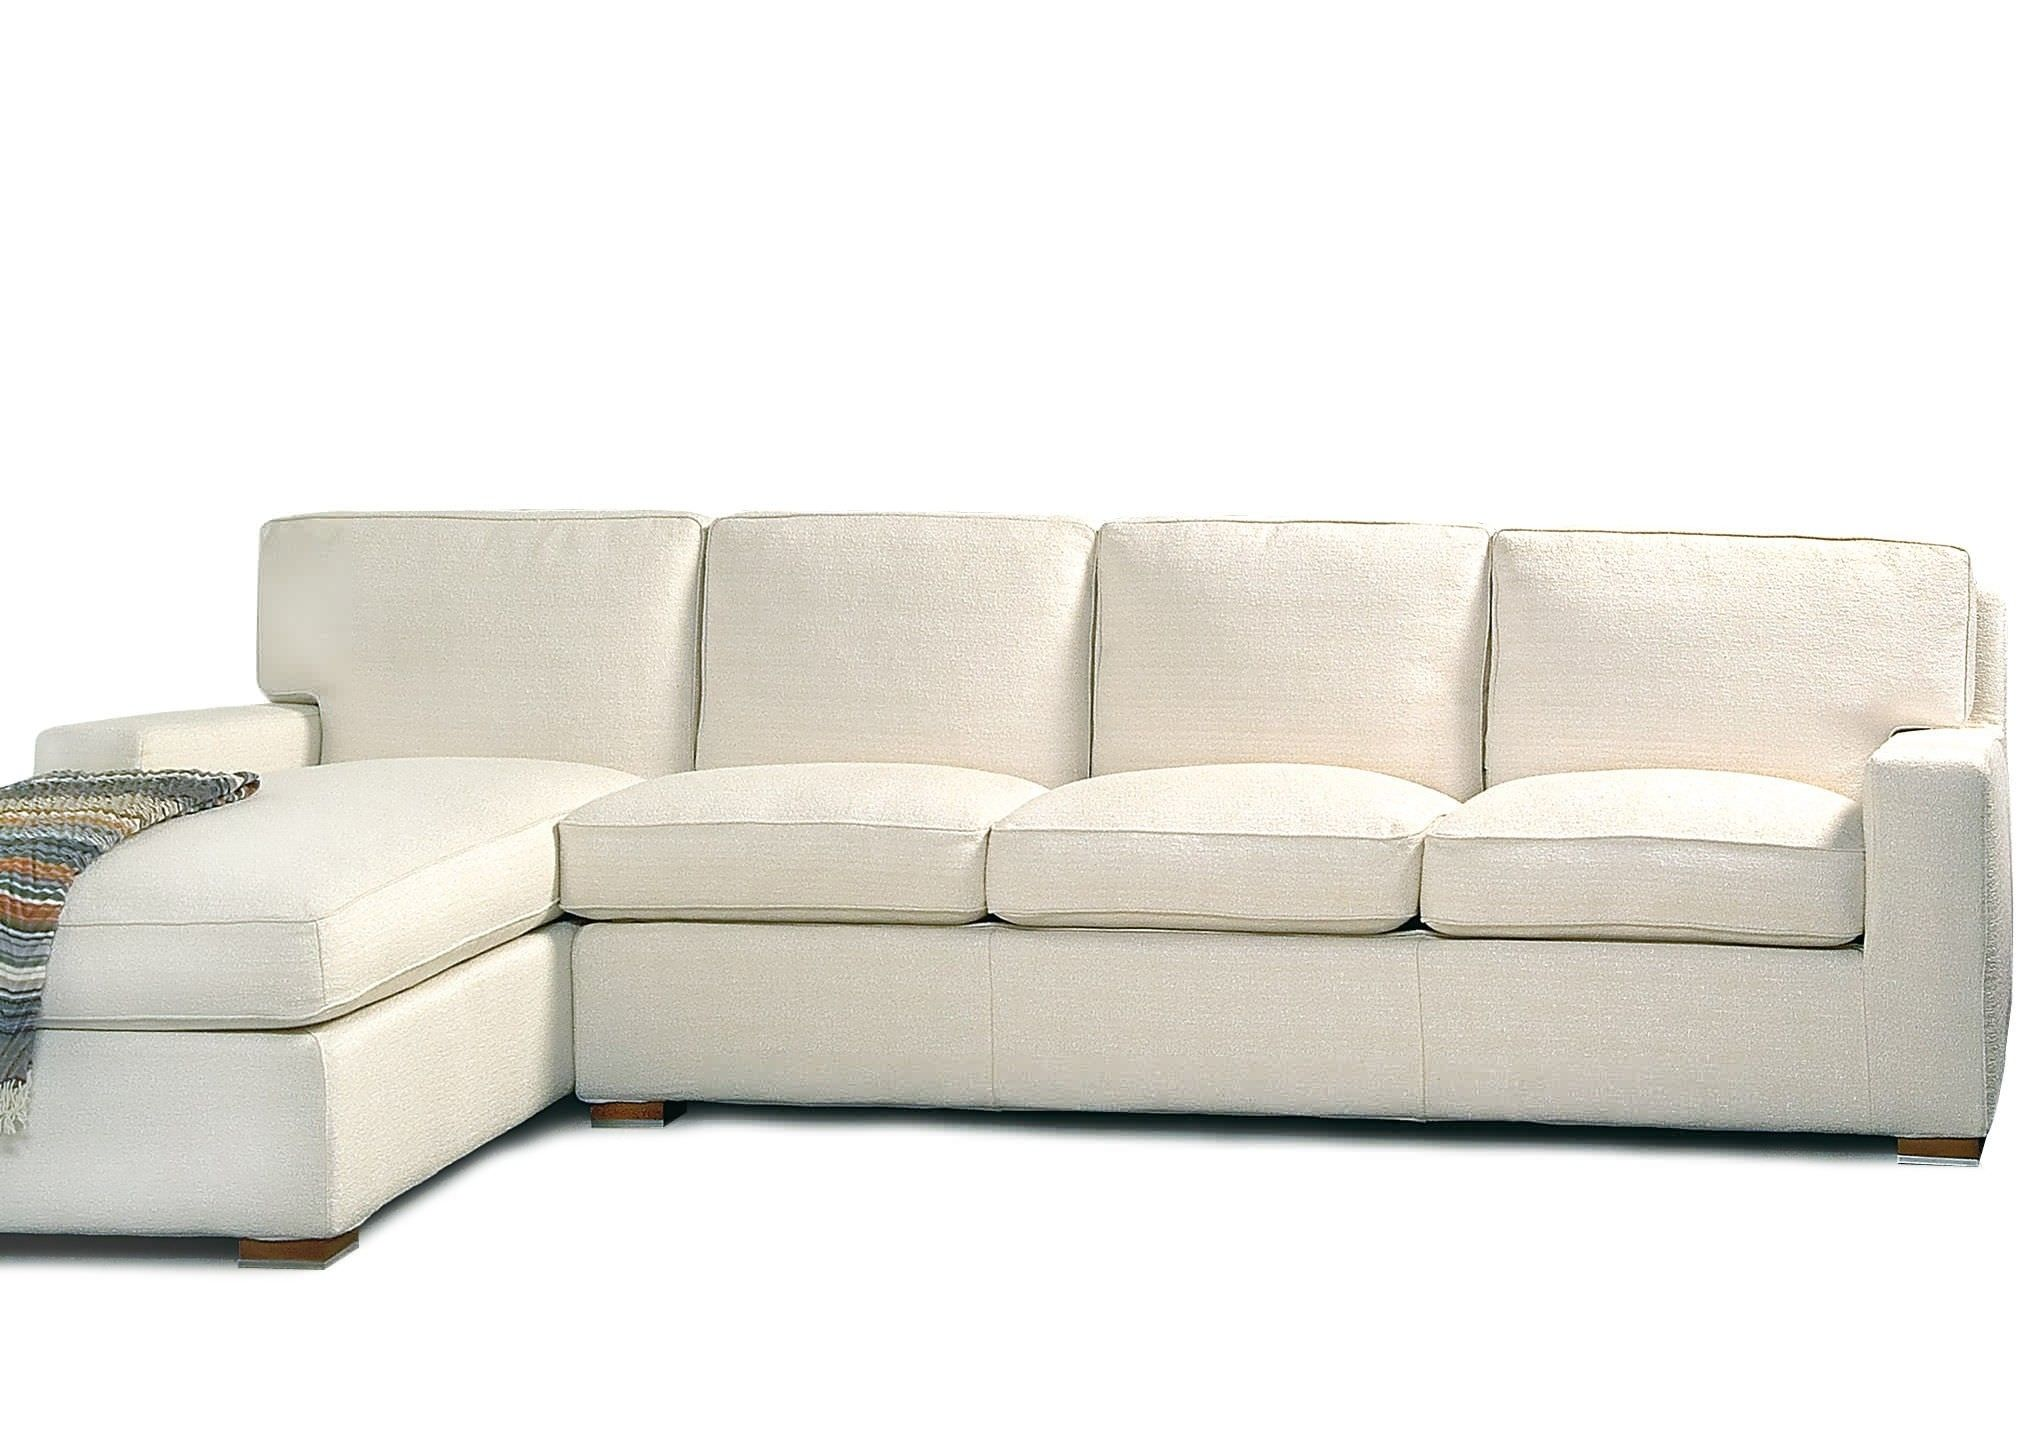 lovely cheap sectional sofas for sale plan-Modern Cheap Sectional sofas for Sale Gallery